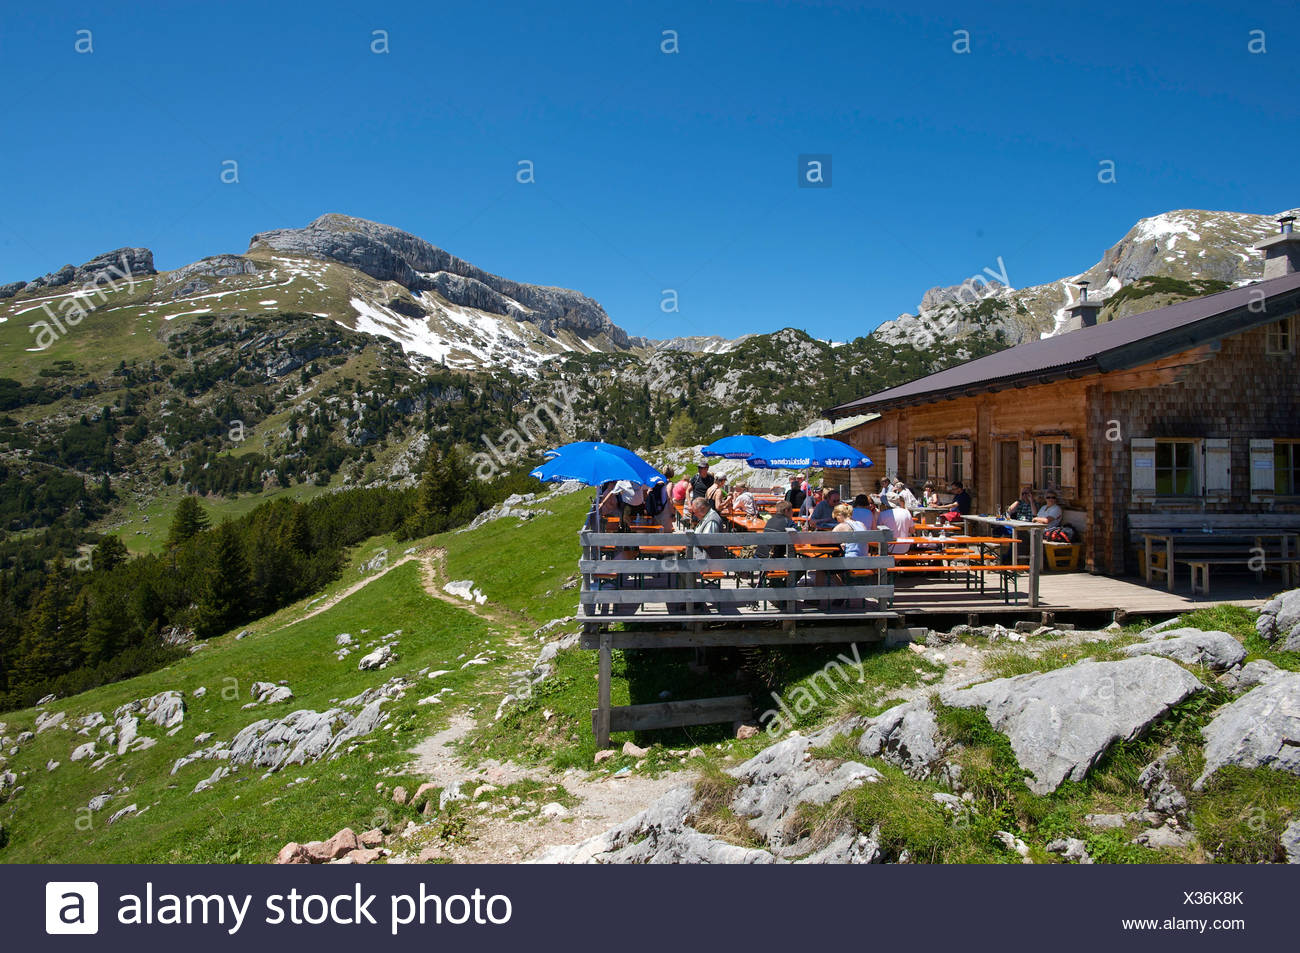 Alpine Hut Below Mt Gschoellkopf In The Rofangebirge Mountains Tyrol Austria Europe